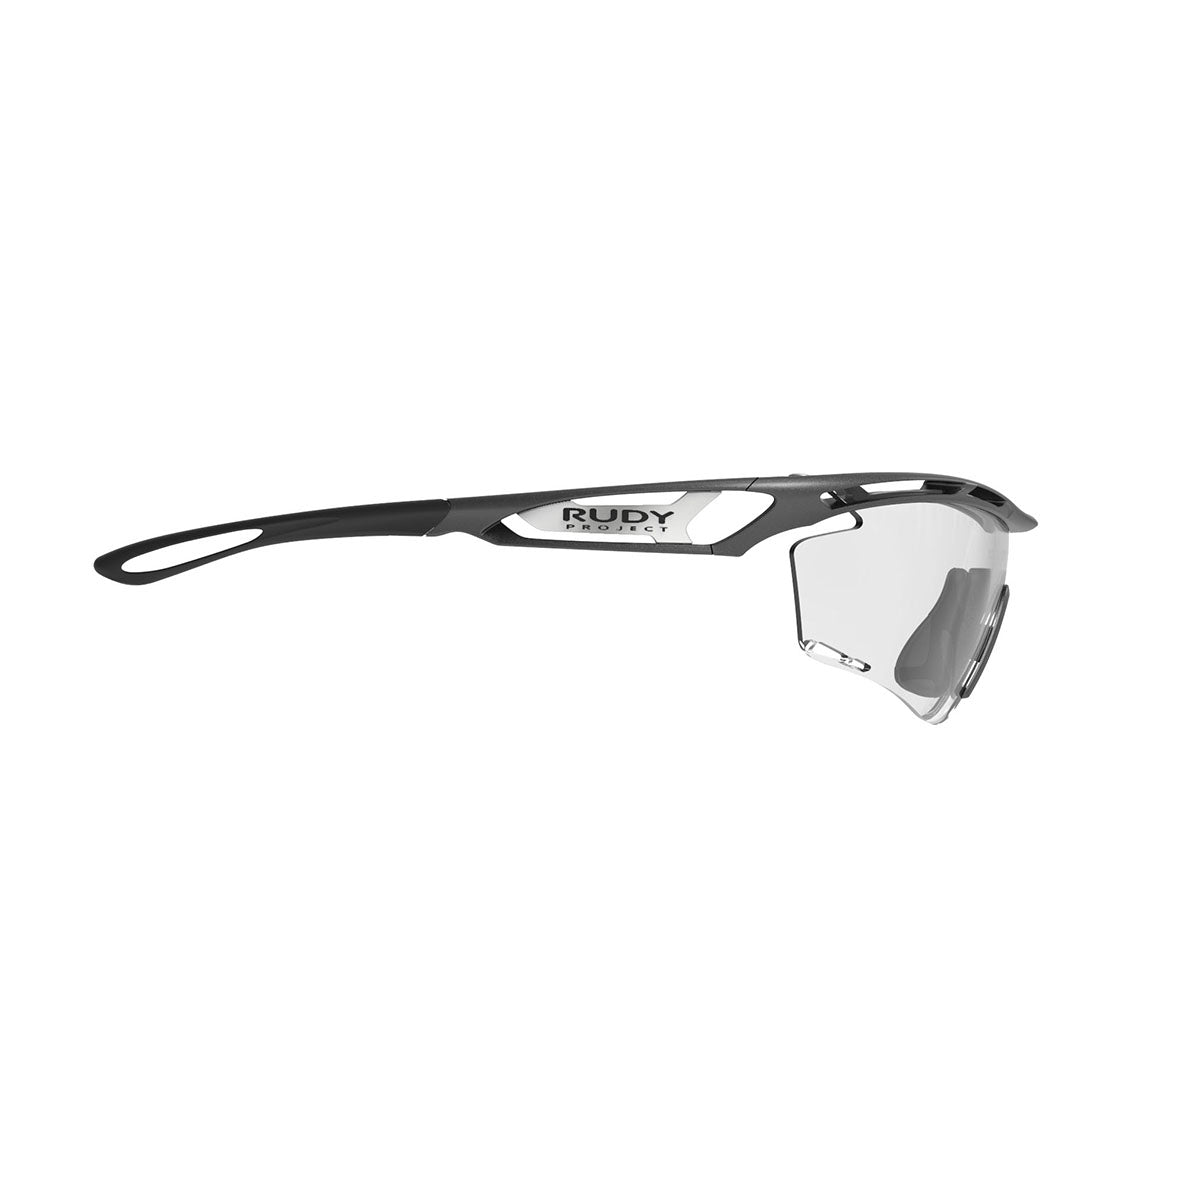 Rudy Project - Tralyx Graphene - frame color: Graphene - lens color: Photochromic clear to black - photo angle: Side Variant Hover Image